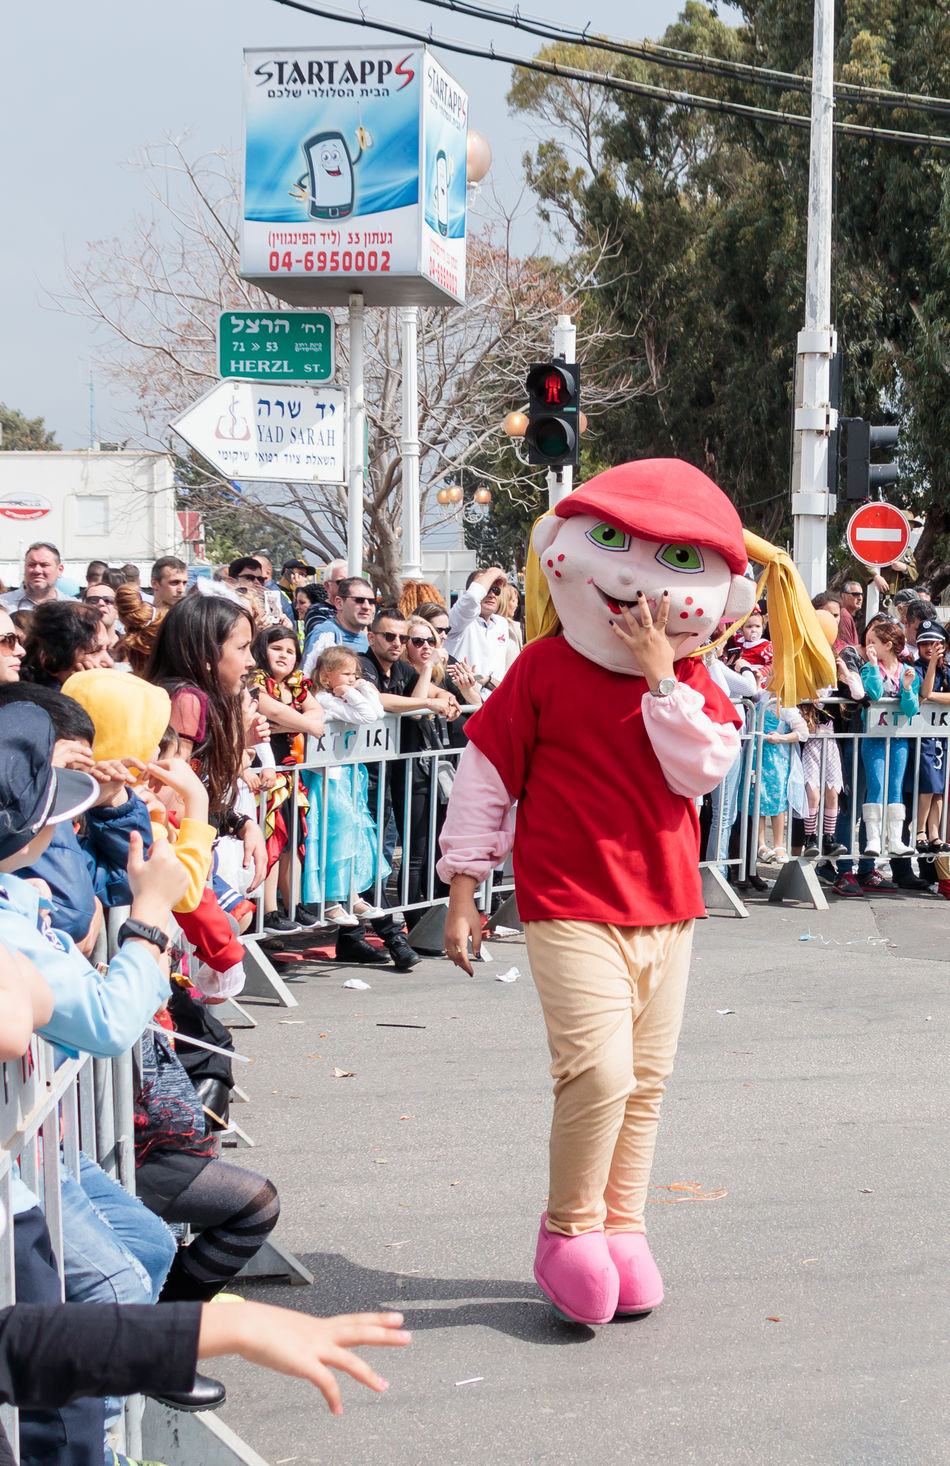 """Nahariyya, Israel, March 10, 2017 : Participant in the traditional annual carnival parade """"Adloyada"""" dressed in the suit of big rabbit goes near the viewers in Nahariyya, Israel Adloyada Adult Beauty Carnival Celebration Colorful Costume Culture Day Decoration Dressed Entertainment Festival Fun Happy Israel Masquerade Nahariyya Outdoors Parade Party People Style Traditional Travel"""